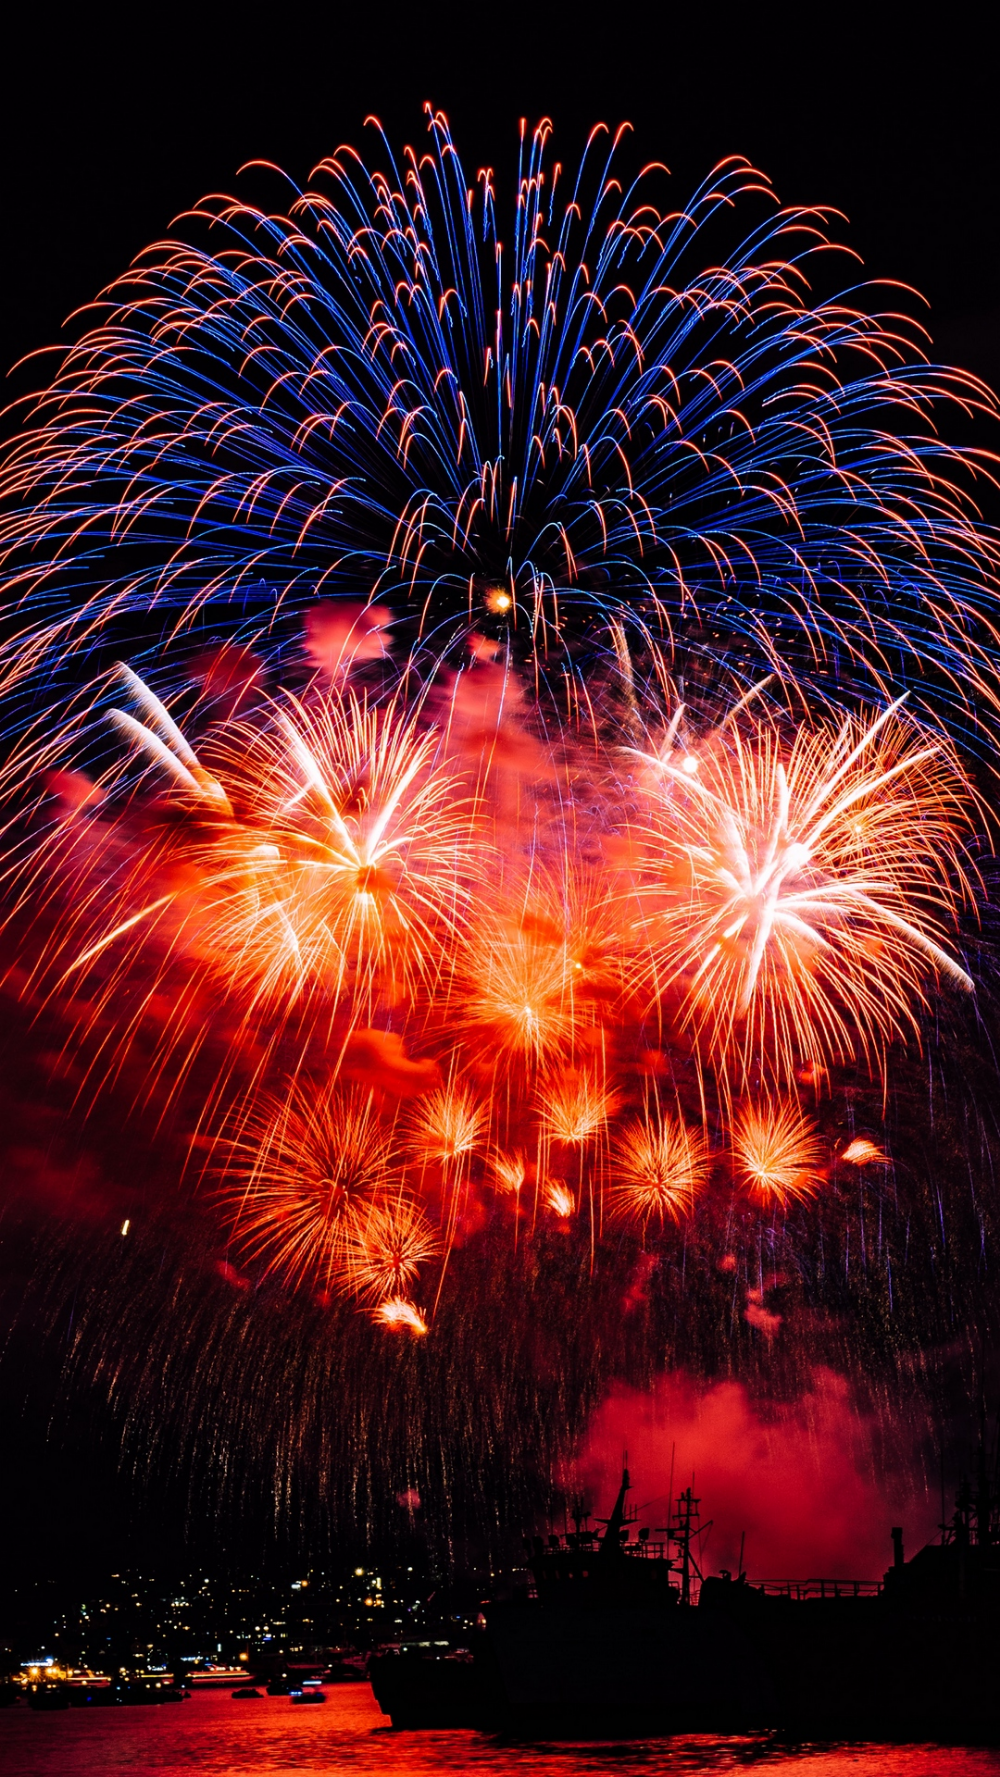 Download wallpaper 1080x1920 fireworks, salute, colorful